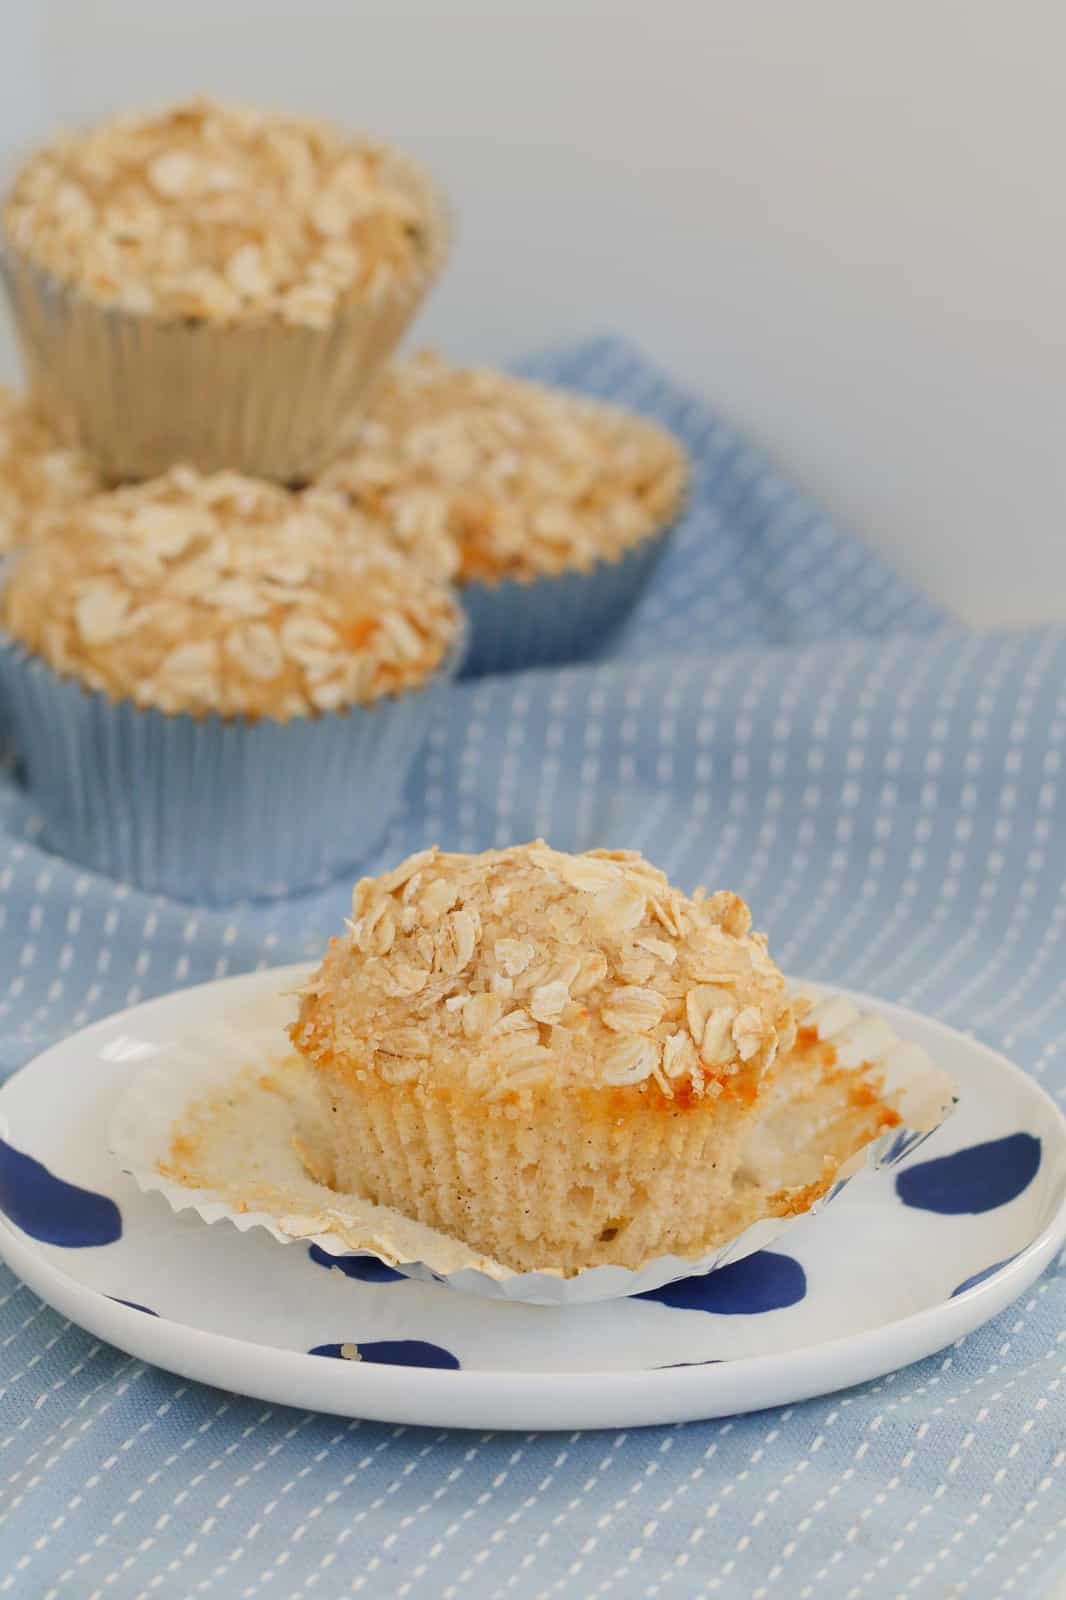 Apple oat muffins on a blue tea towel and one on a white plate in the foreground